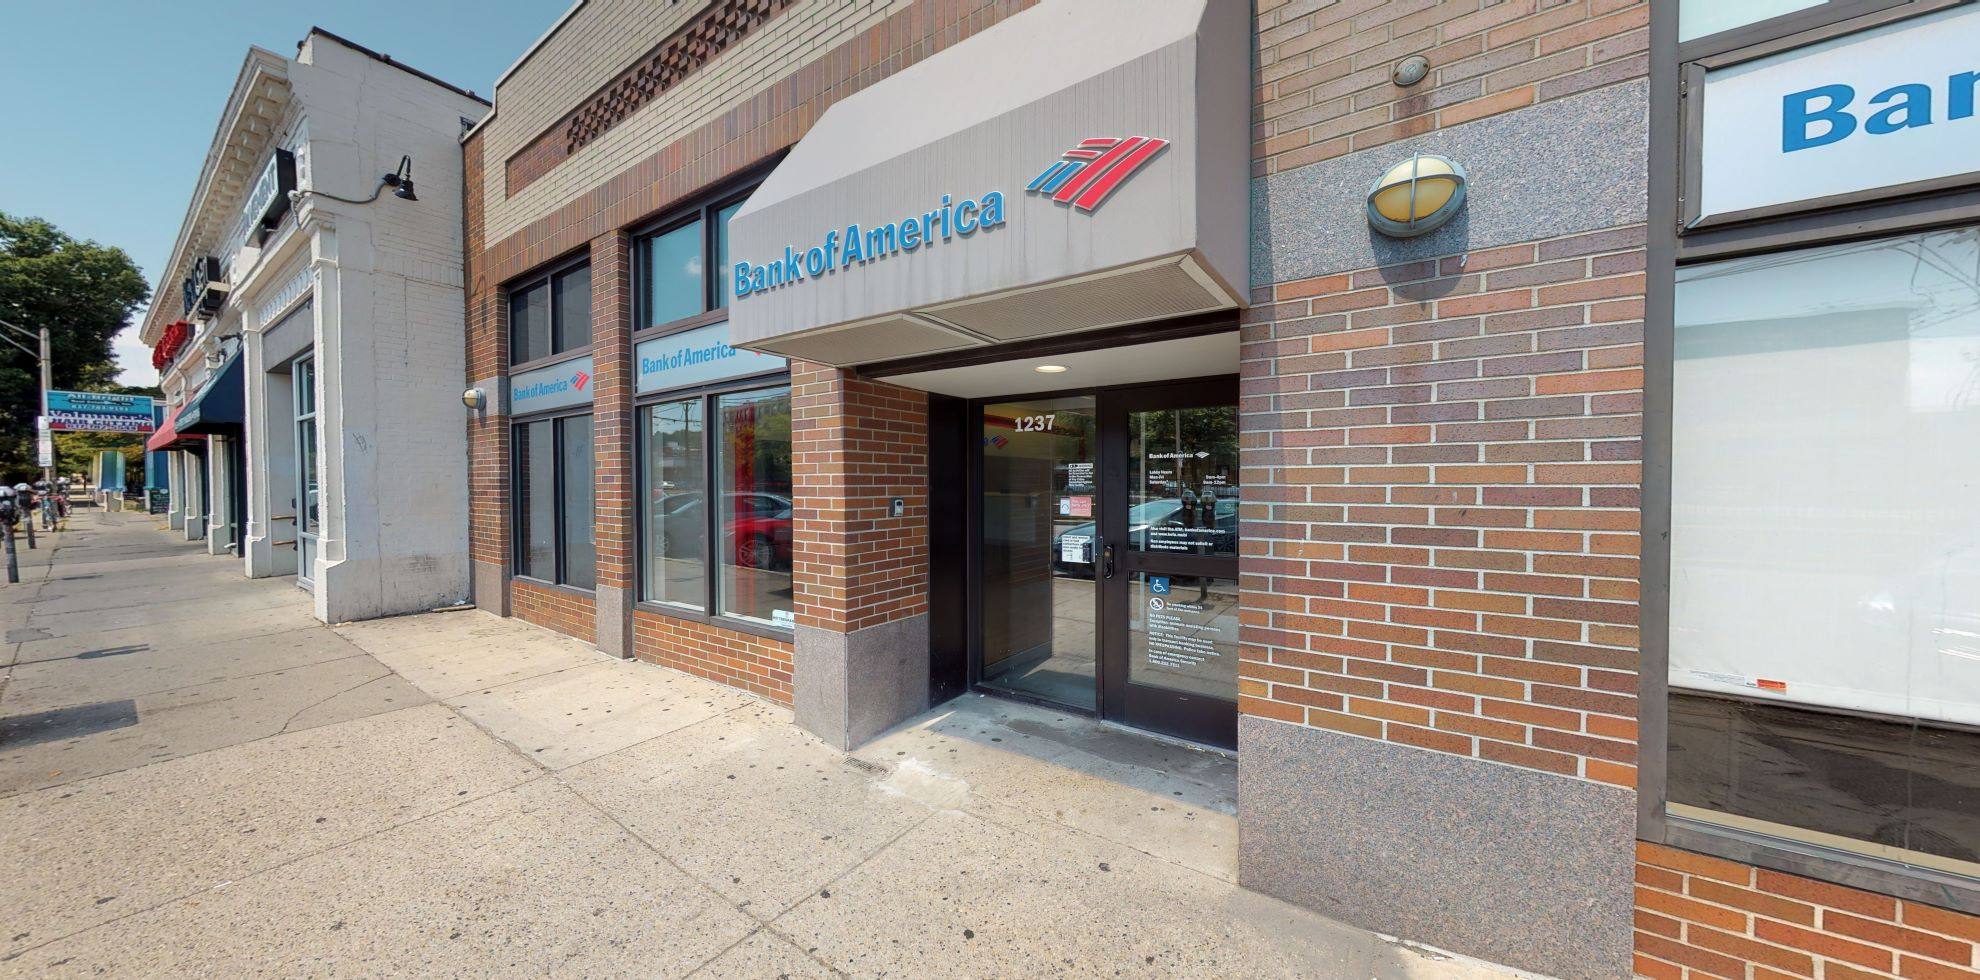 Bank of America financial center with walk-up ATM | 1237 Commonwealth Ave, Boston, MA 02134